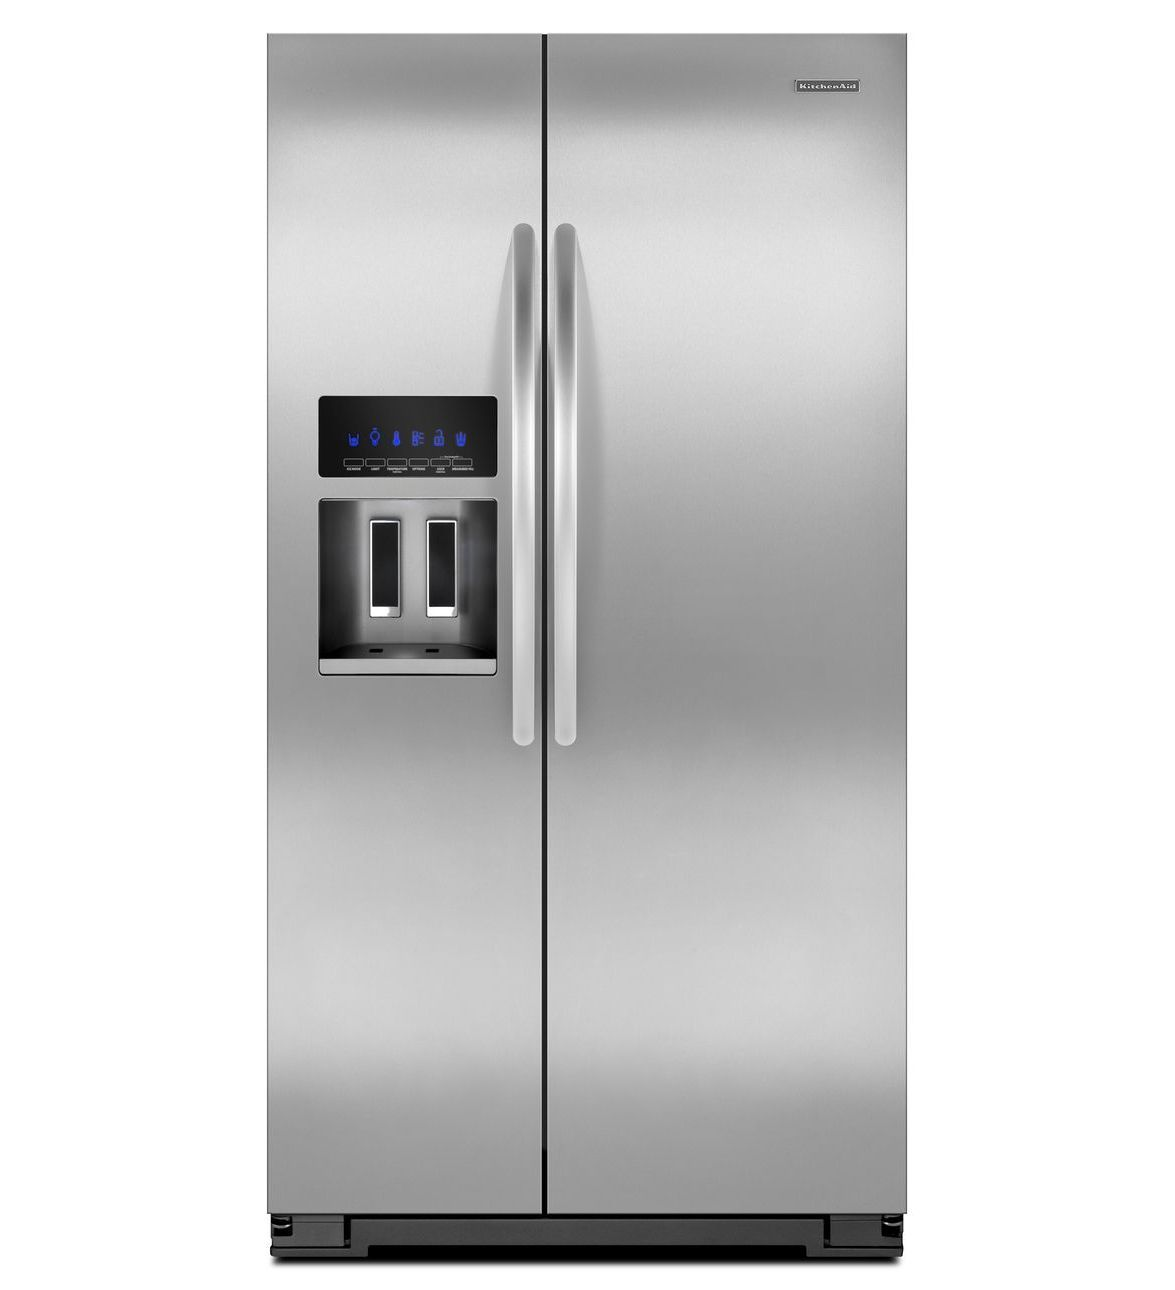 KSC23C8EYY KitchenAid 23 cubic foot refrigerator combines the ...